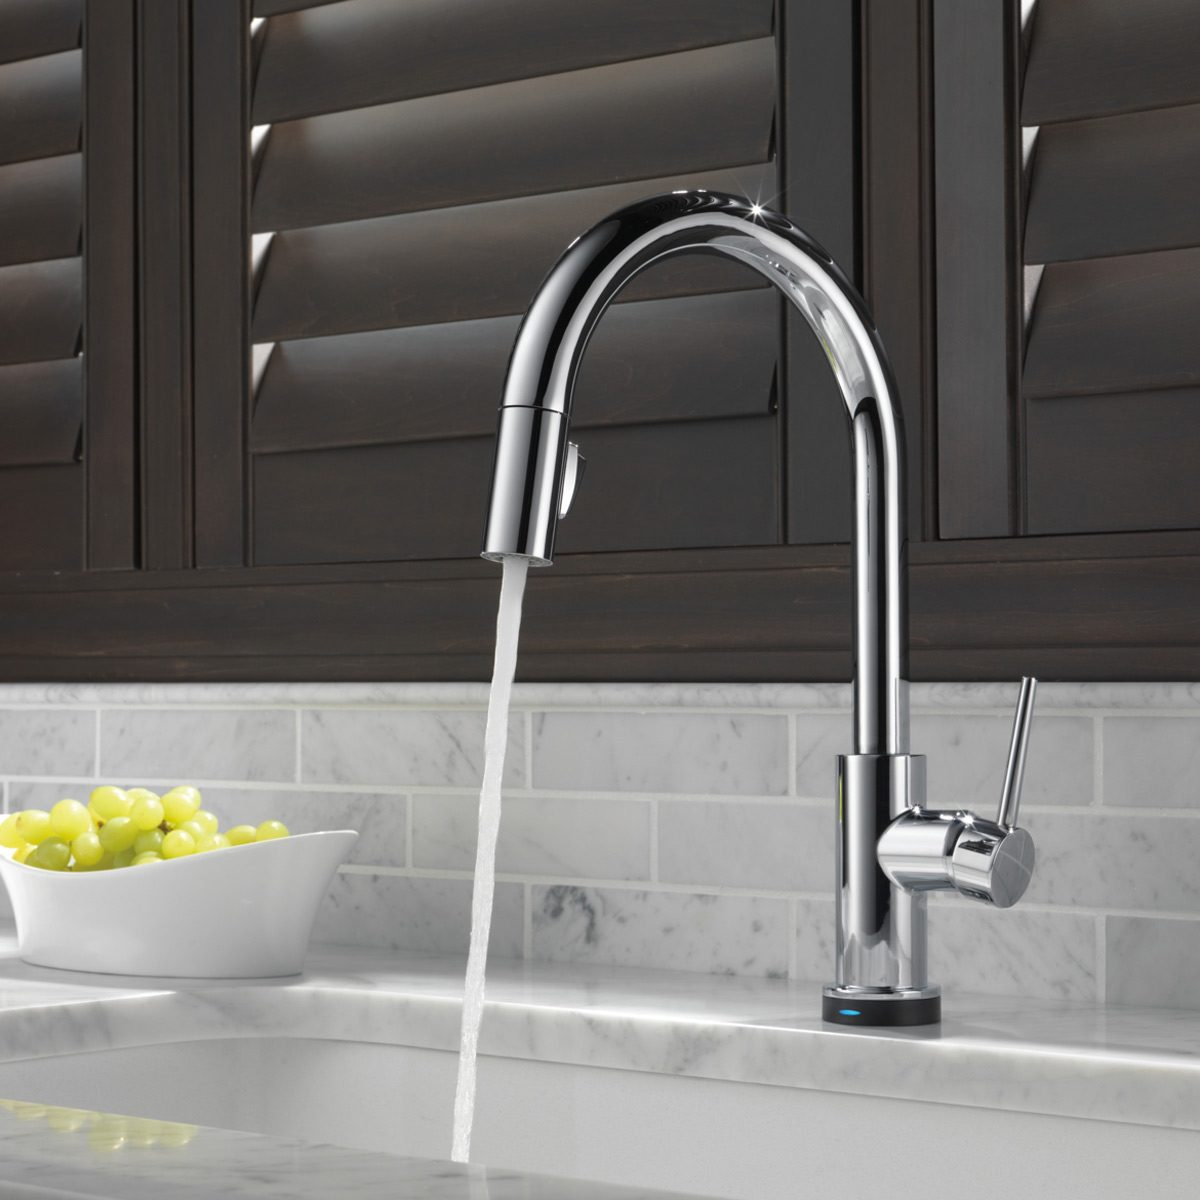 single-handle-faucet plumbing fixtures